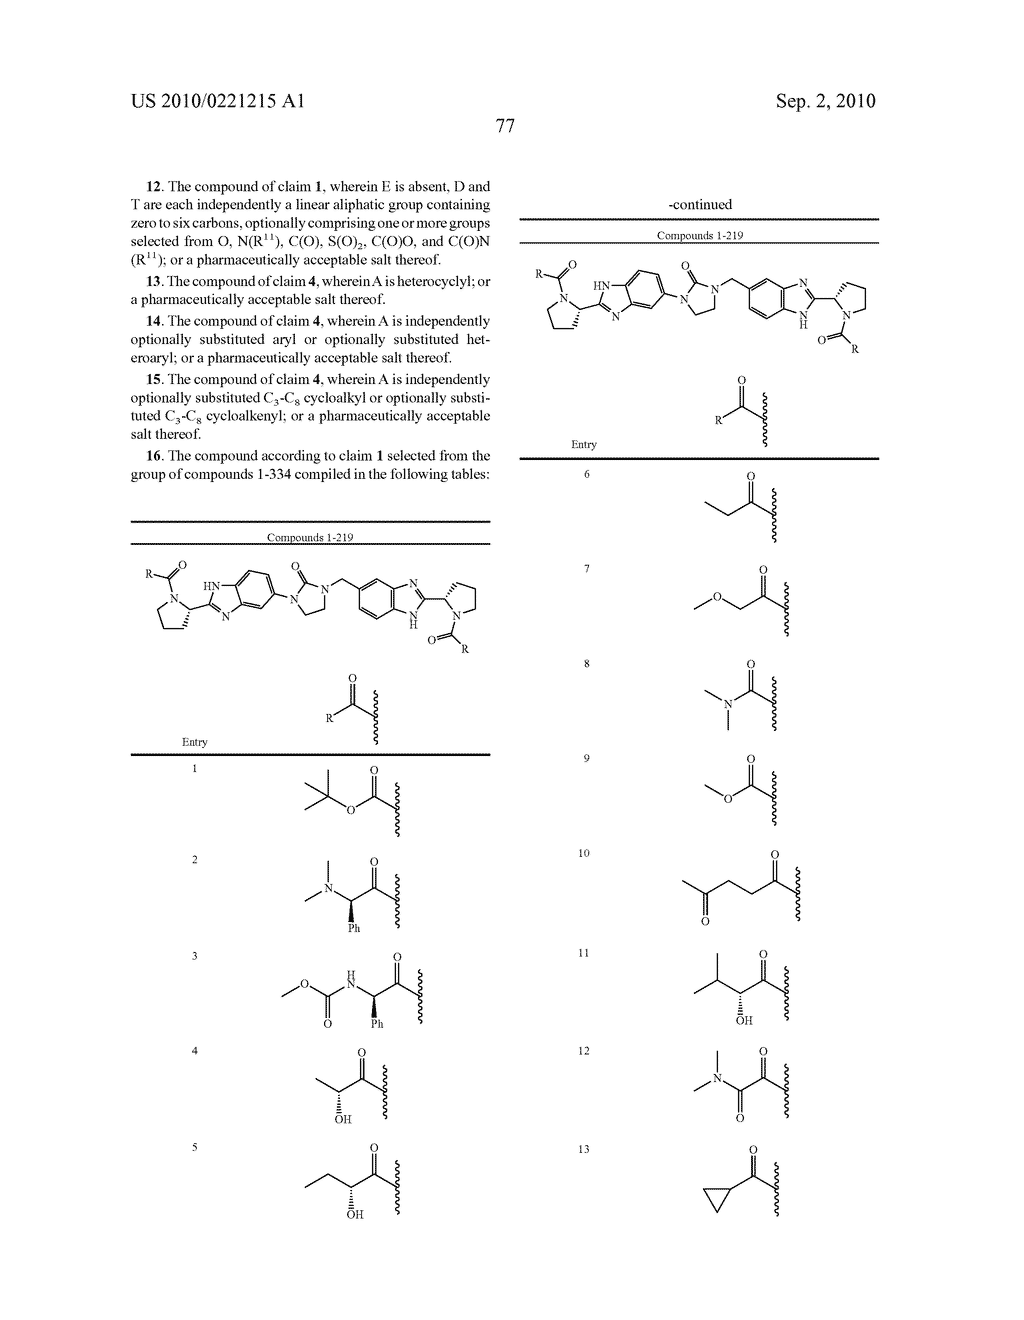 LINKED DIBENZIMIDAZOLE DERIVATIVES - diagram, schematic, and image 78